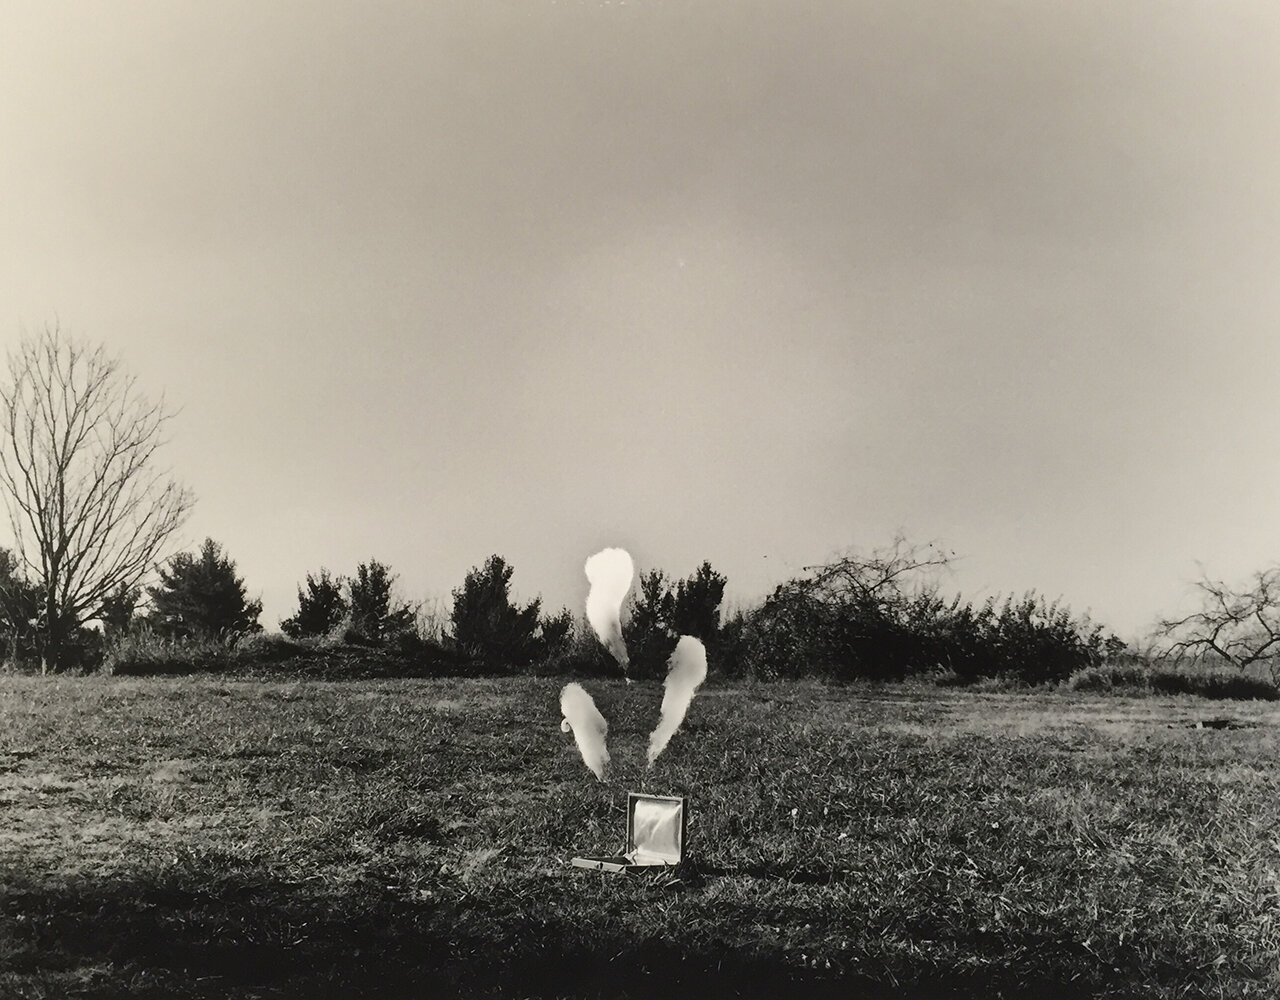 """Occurrence, silver gelatin print, 16x20"""", 2016 © Kelsey Dillow"""